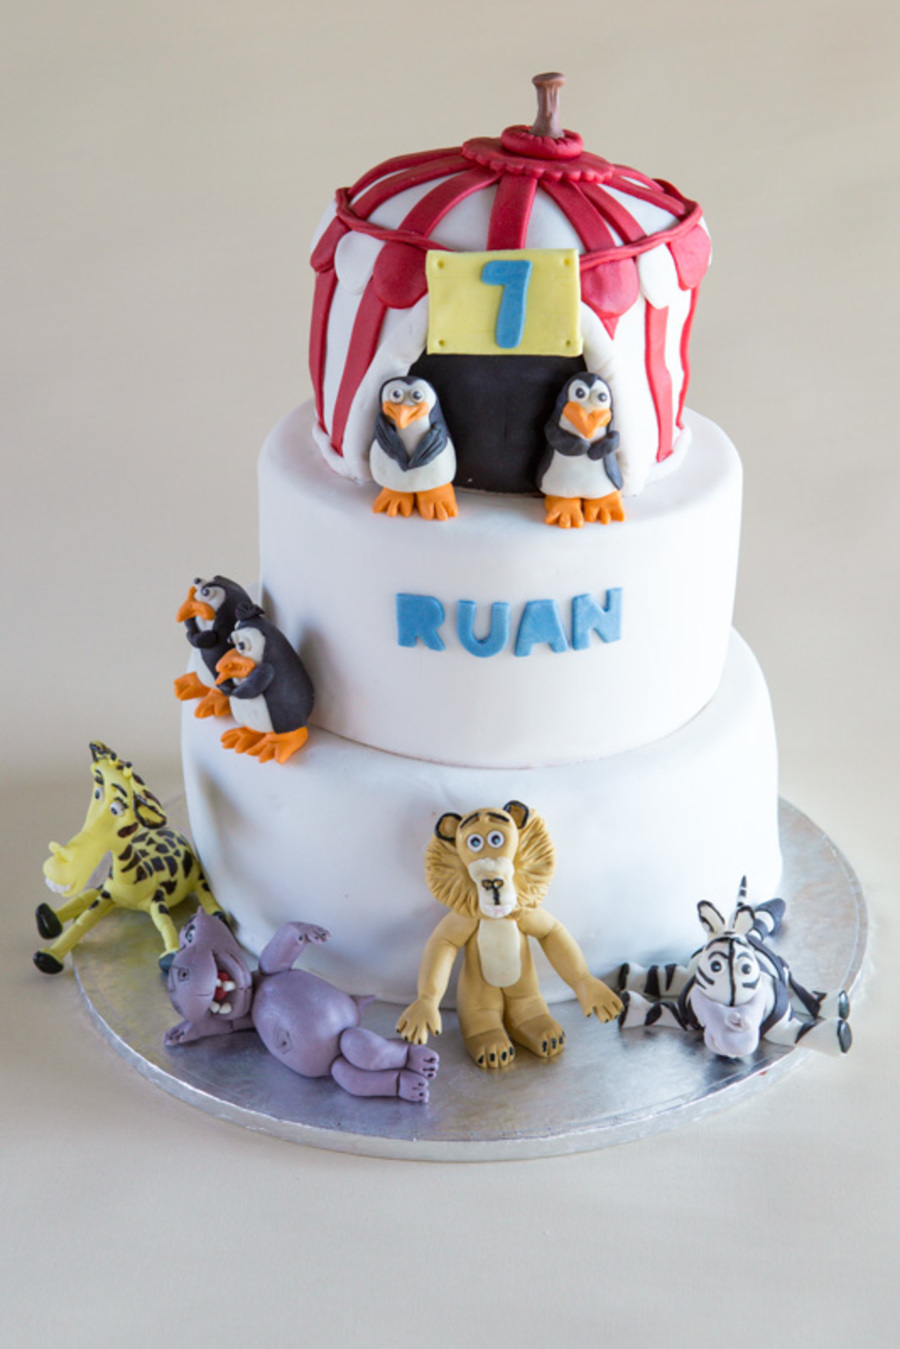 Madagascar Themed Cake For My Sons 7th Birthday 3 Tiered